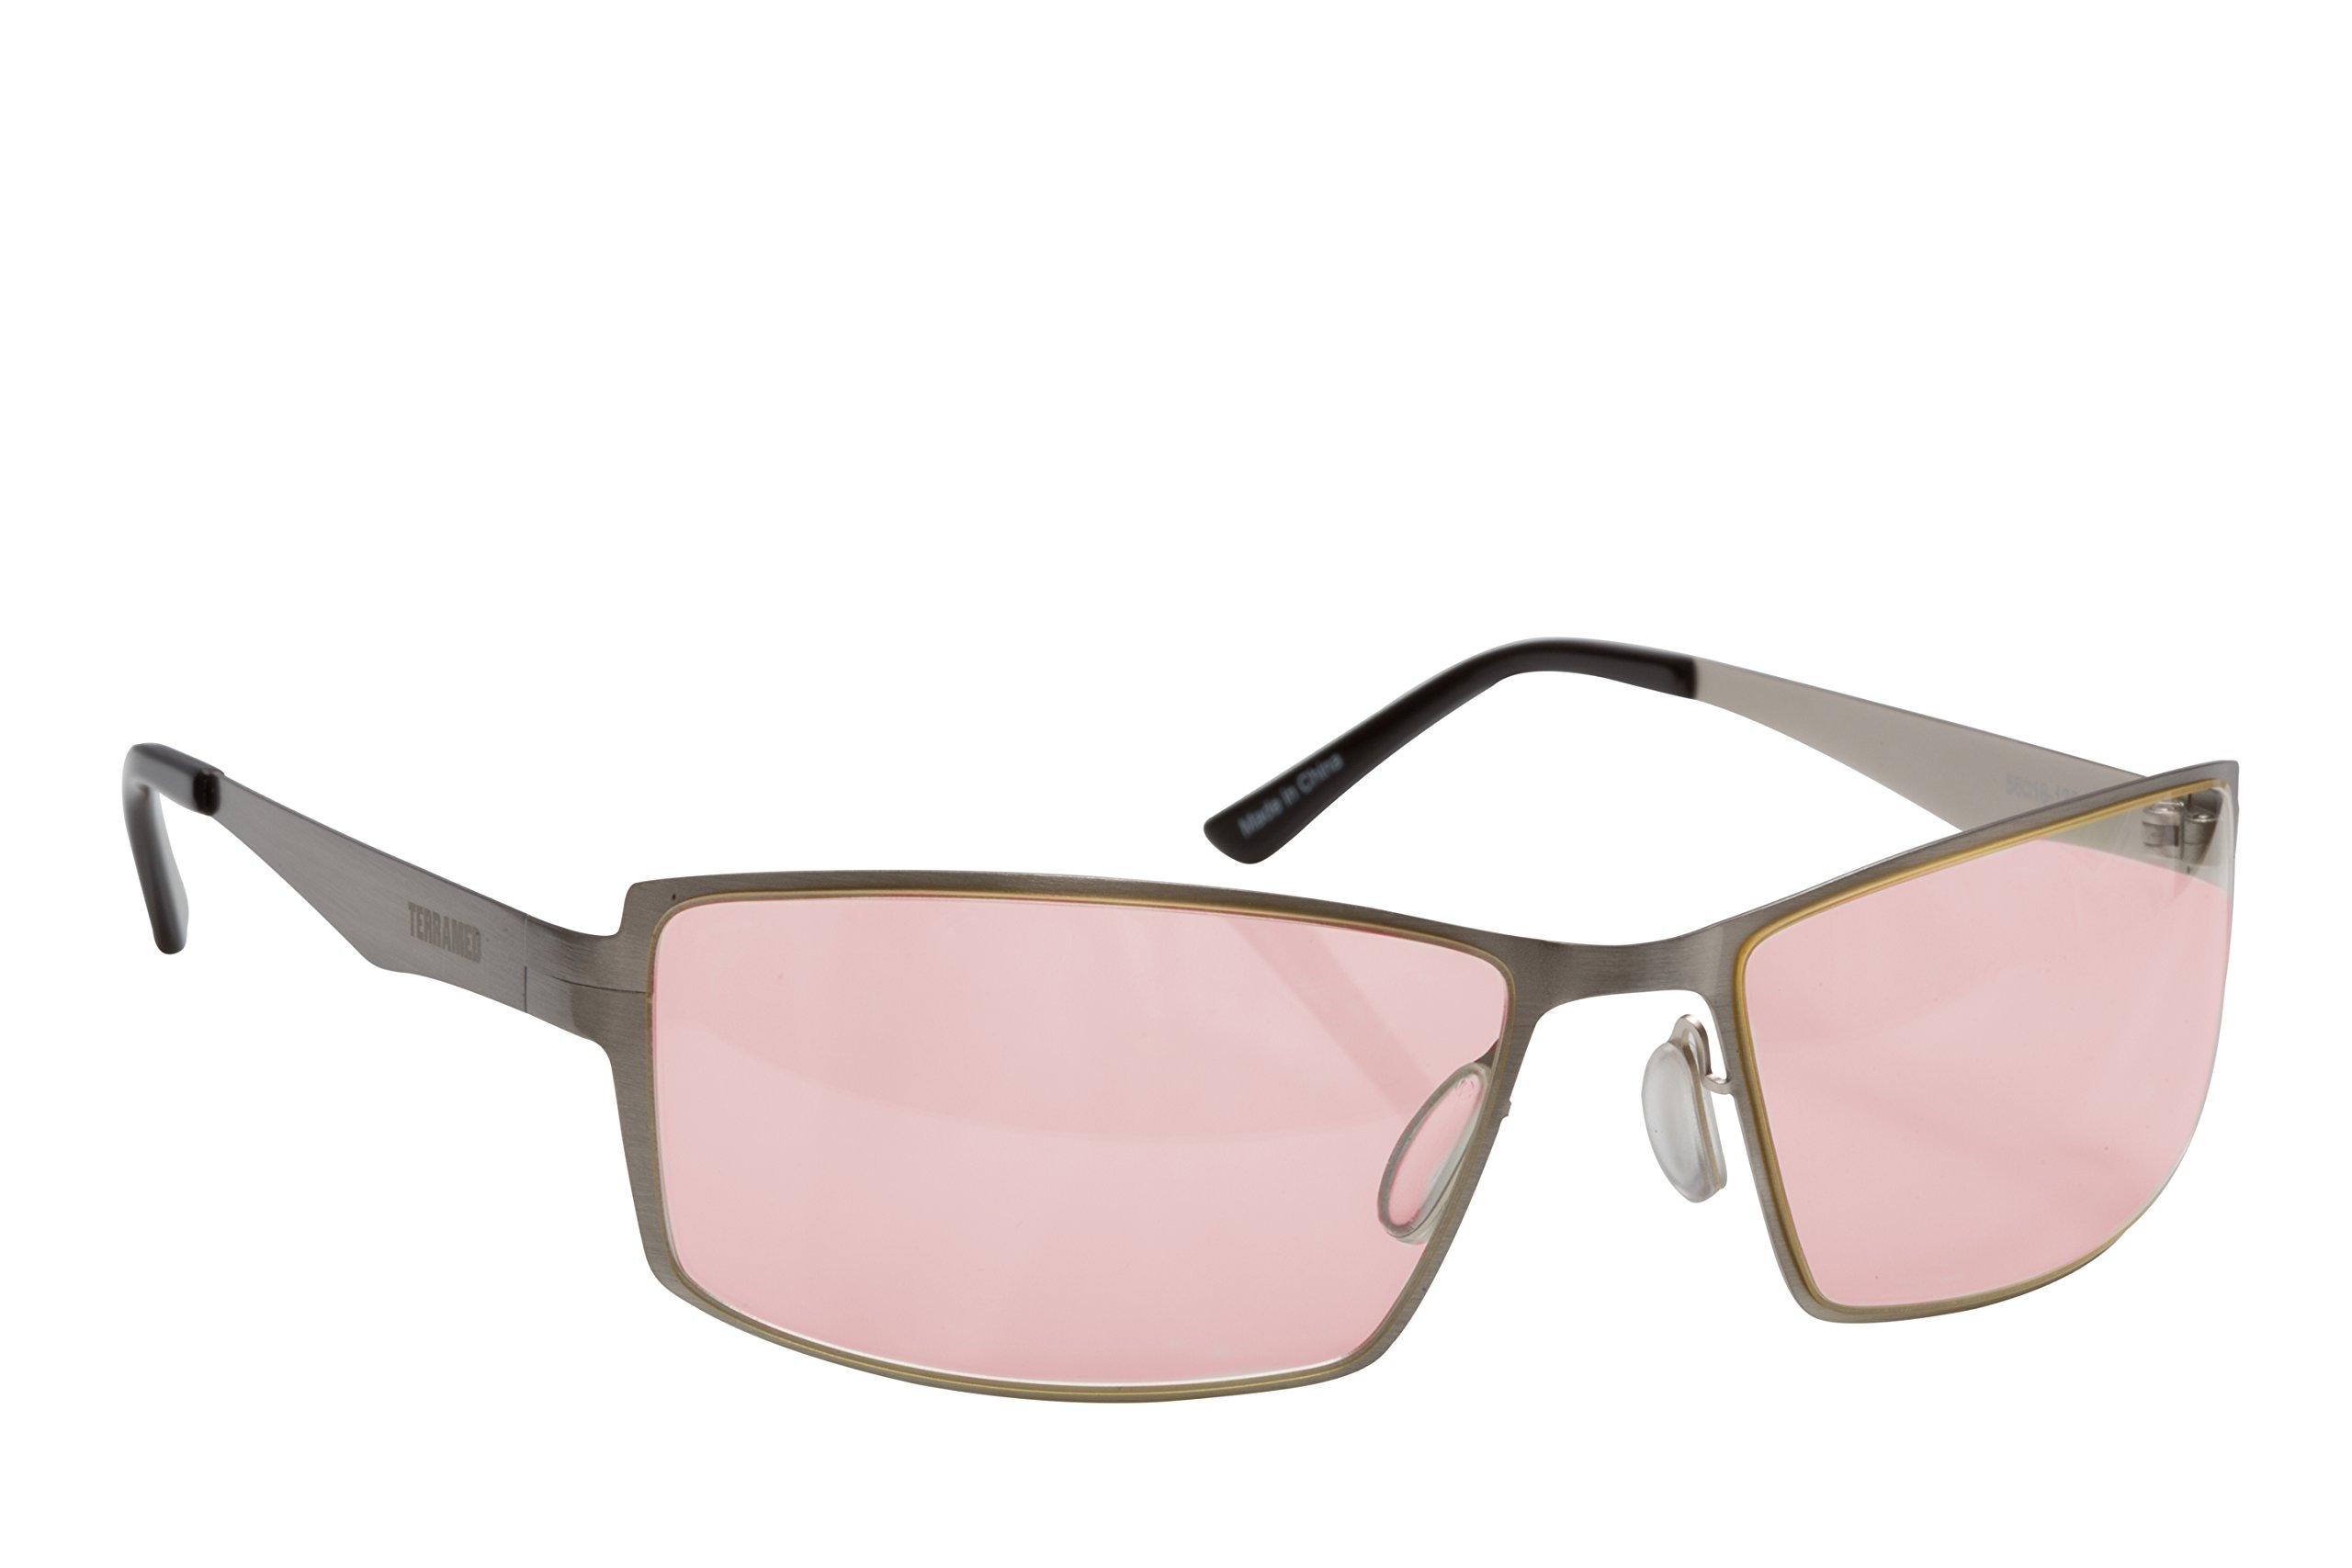 Migraine Glasses for Migraine Relief and Light Sensitivity Relief - Terramed Sparrow Unisex Migraine Glasses Women or Men | Fl-41 Migraine Glasses for Computers Indoor Reading Photophobia Eye Strain by Terramed